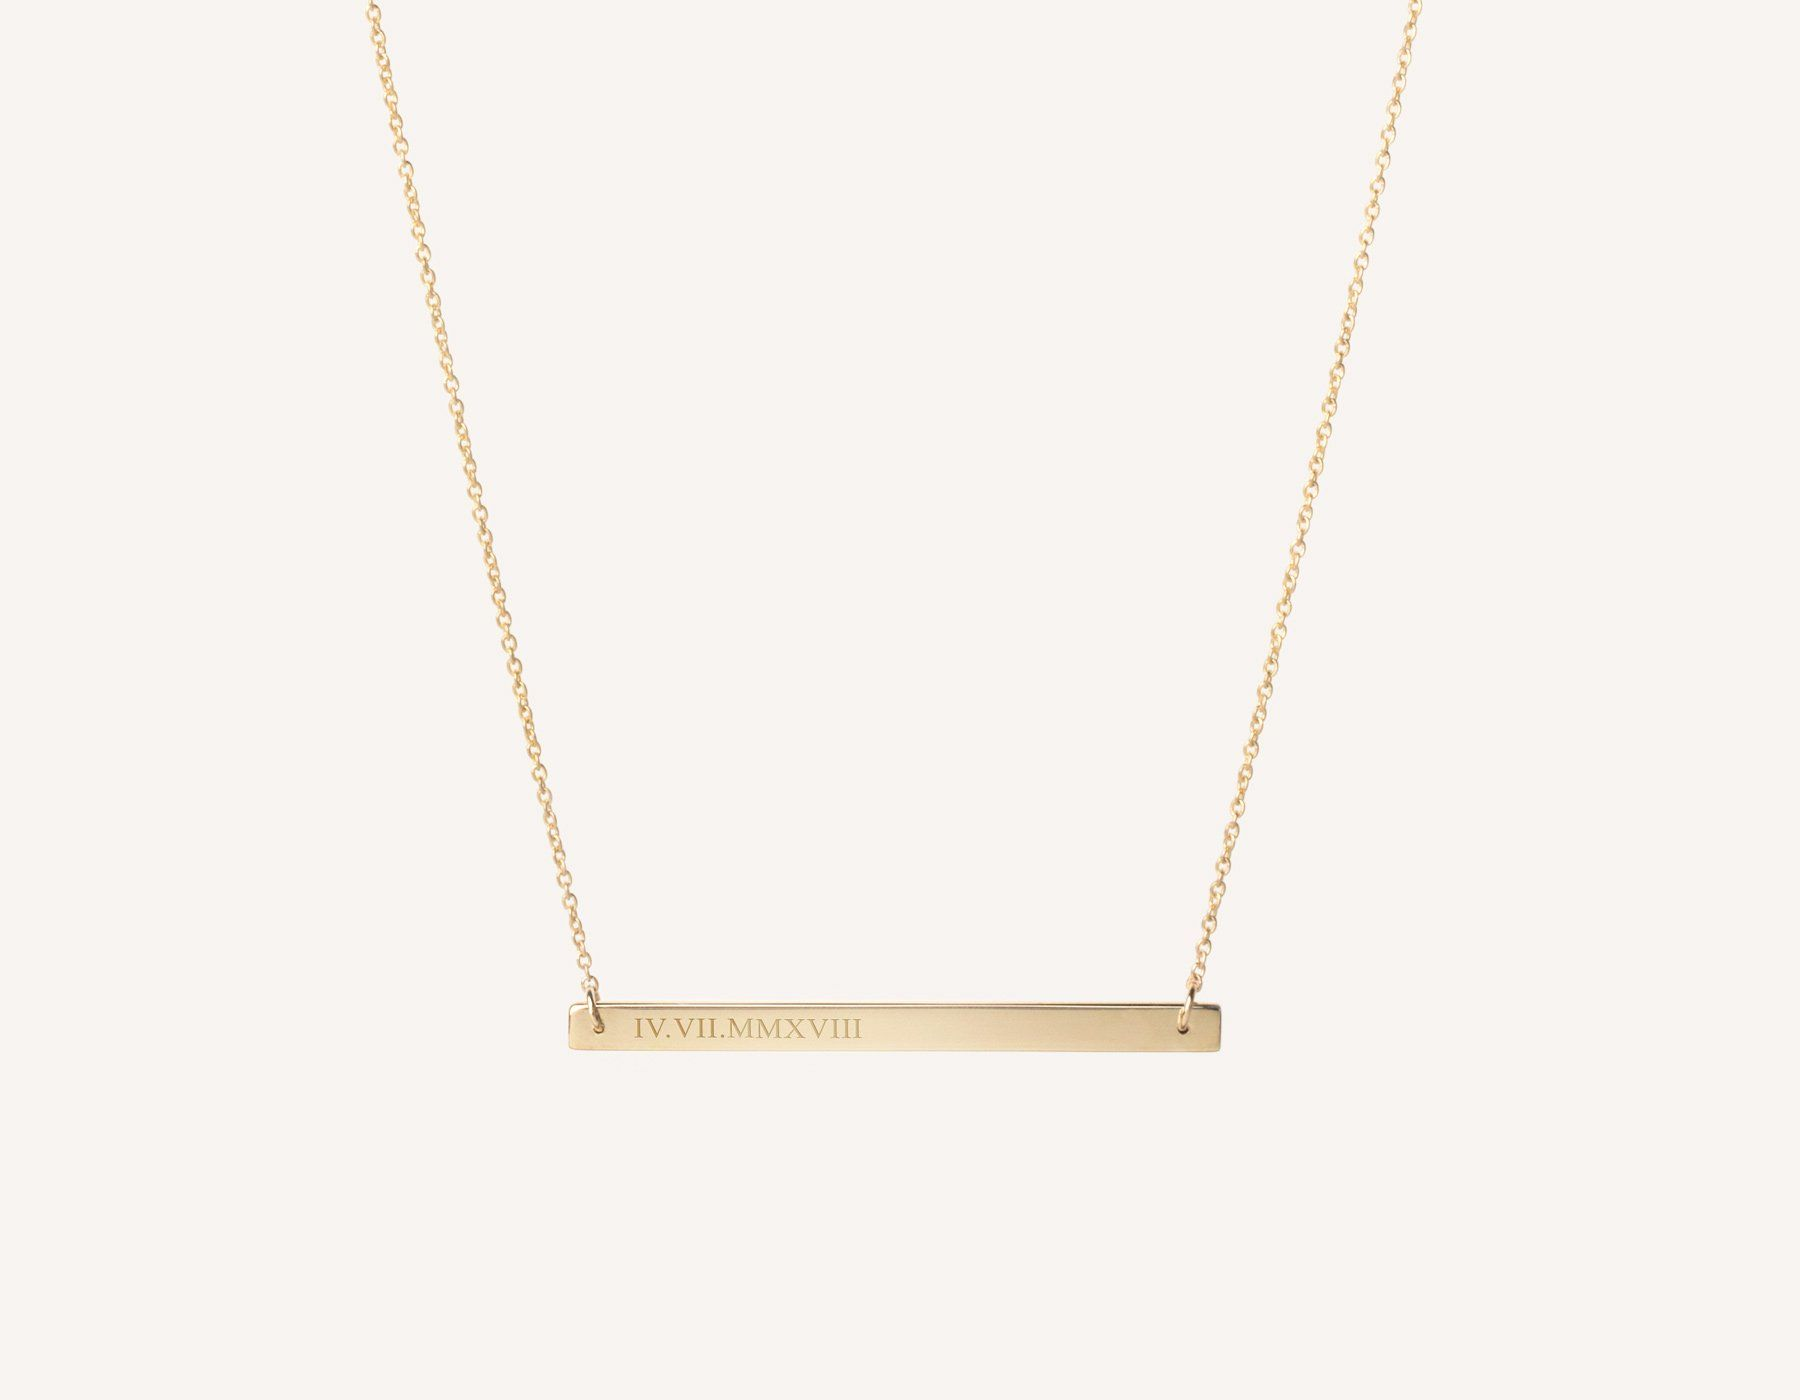 Personalized Engraving 14k Solid Gold Bar Necklace On Dainty 17 Chain By Vrai And Oro Minimali Fine Jewellery Necklace Solid Gold Necklace Gold Necklace Women